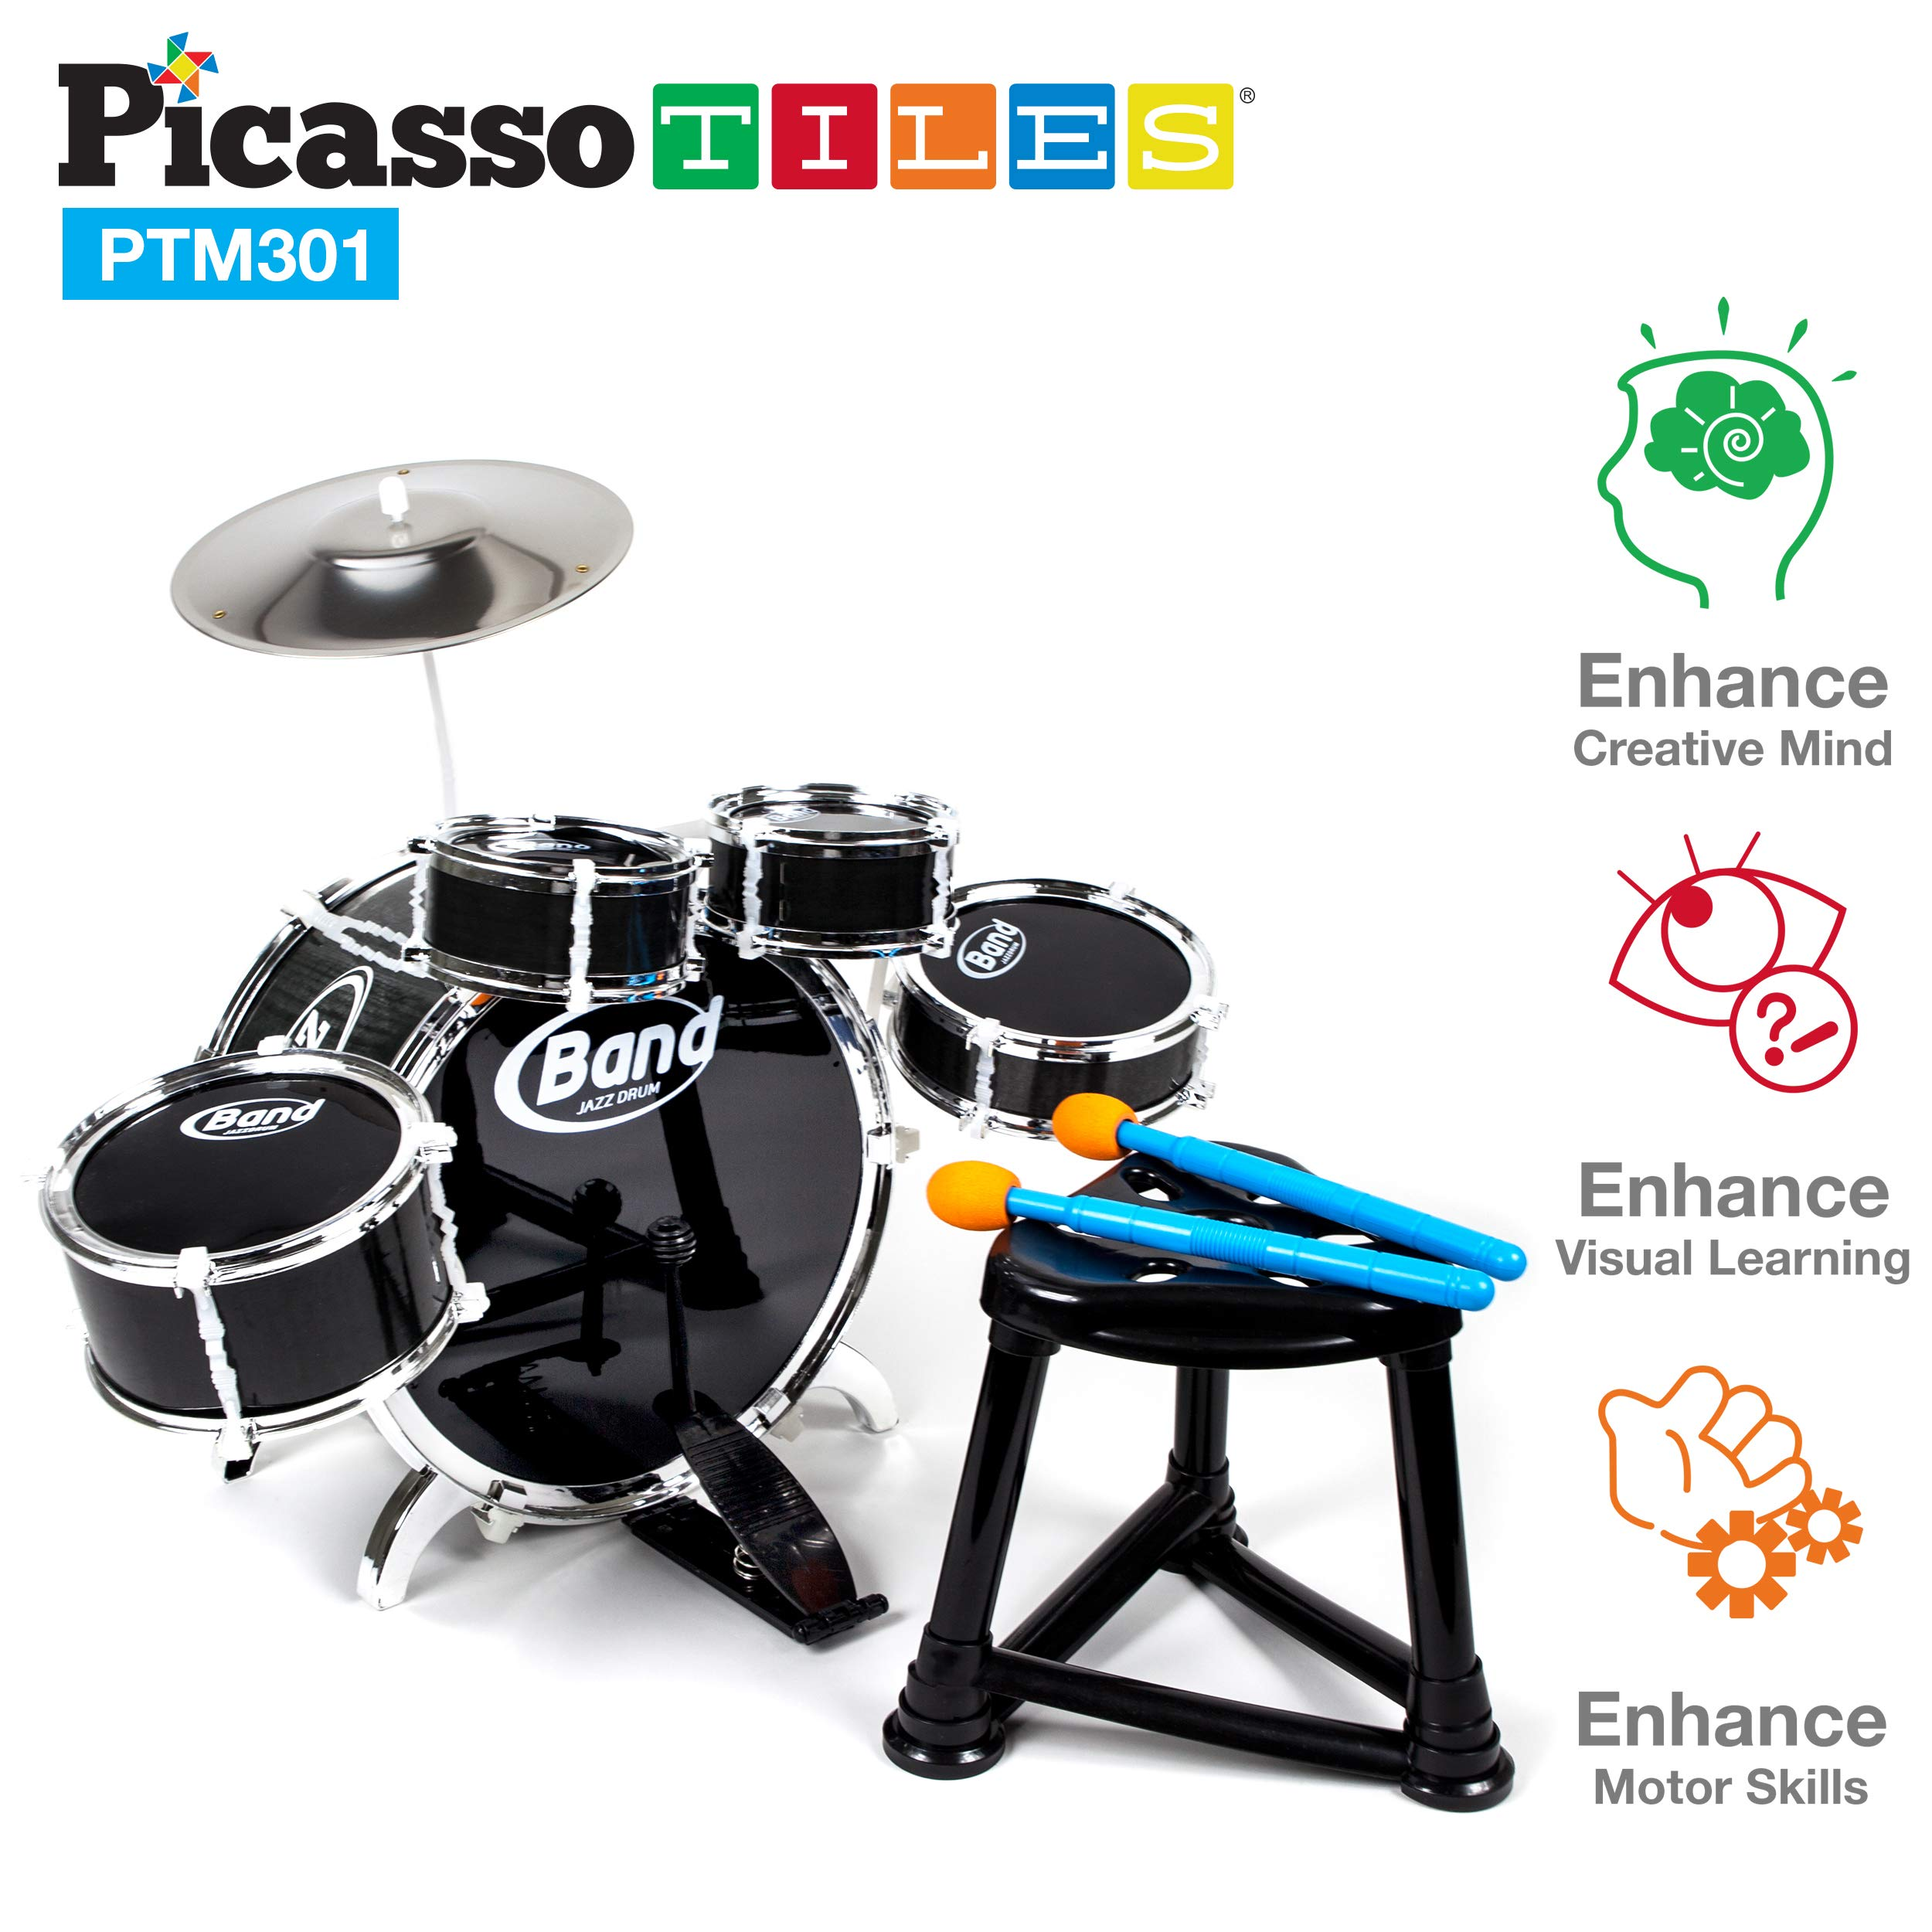 PicassoTiles PTM301 10 Piece Kid Rock N Roll Drum Set w/ 4 snare and 1 bass drums, a cymbal, a chair, a comfortable kick pedal, 2 drumsticks, and a sturdy chair - Metallic BLUE by PicassoTiles